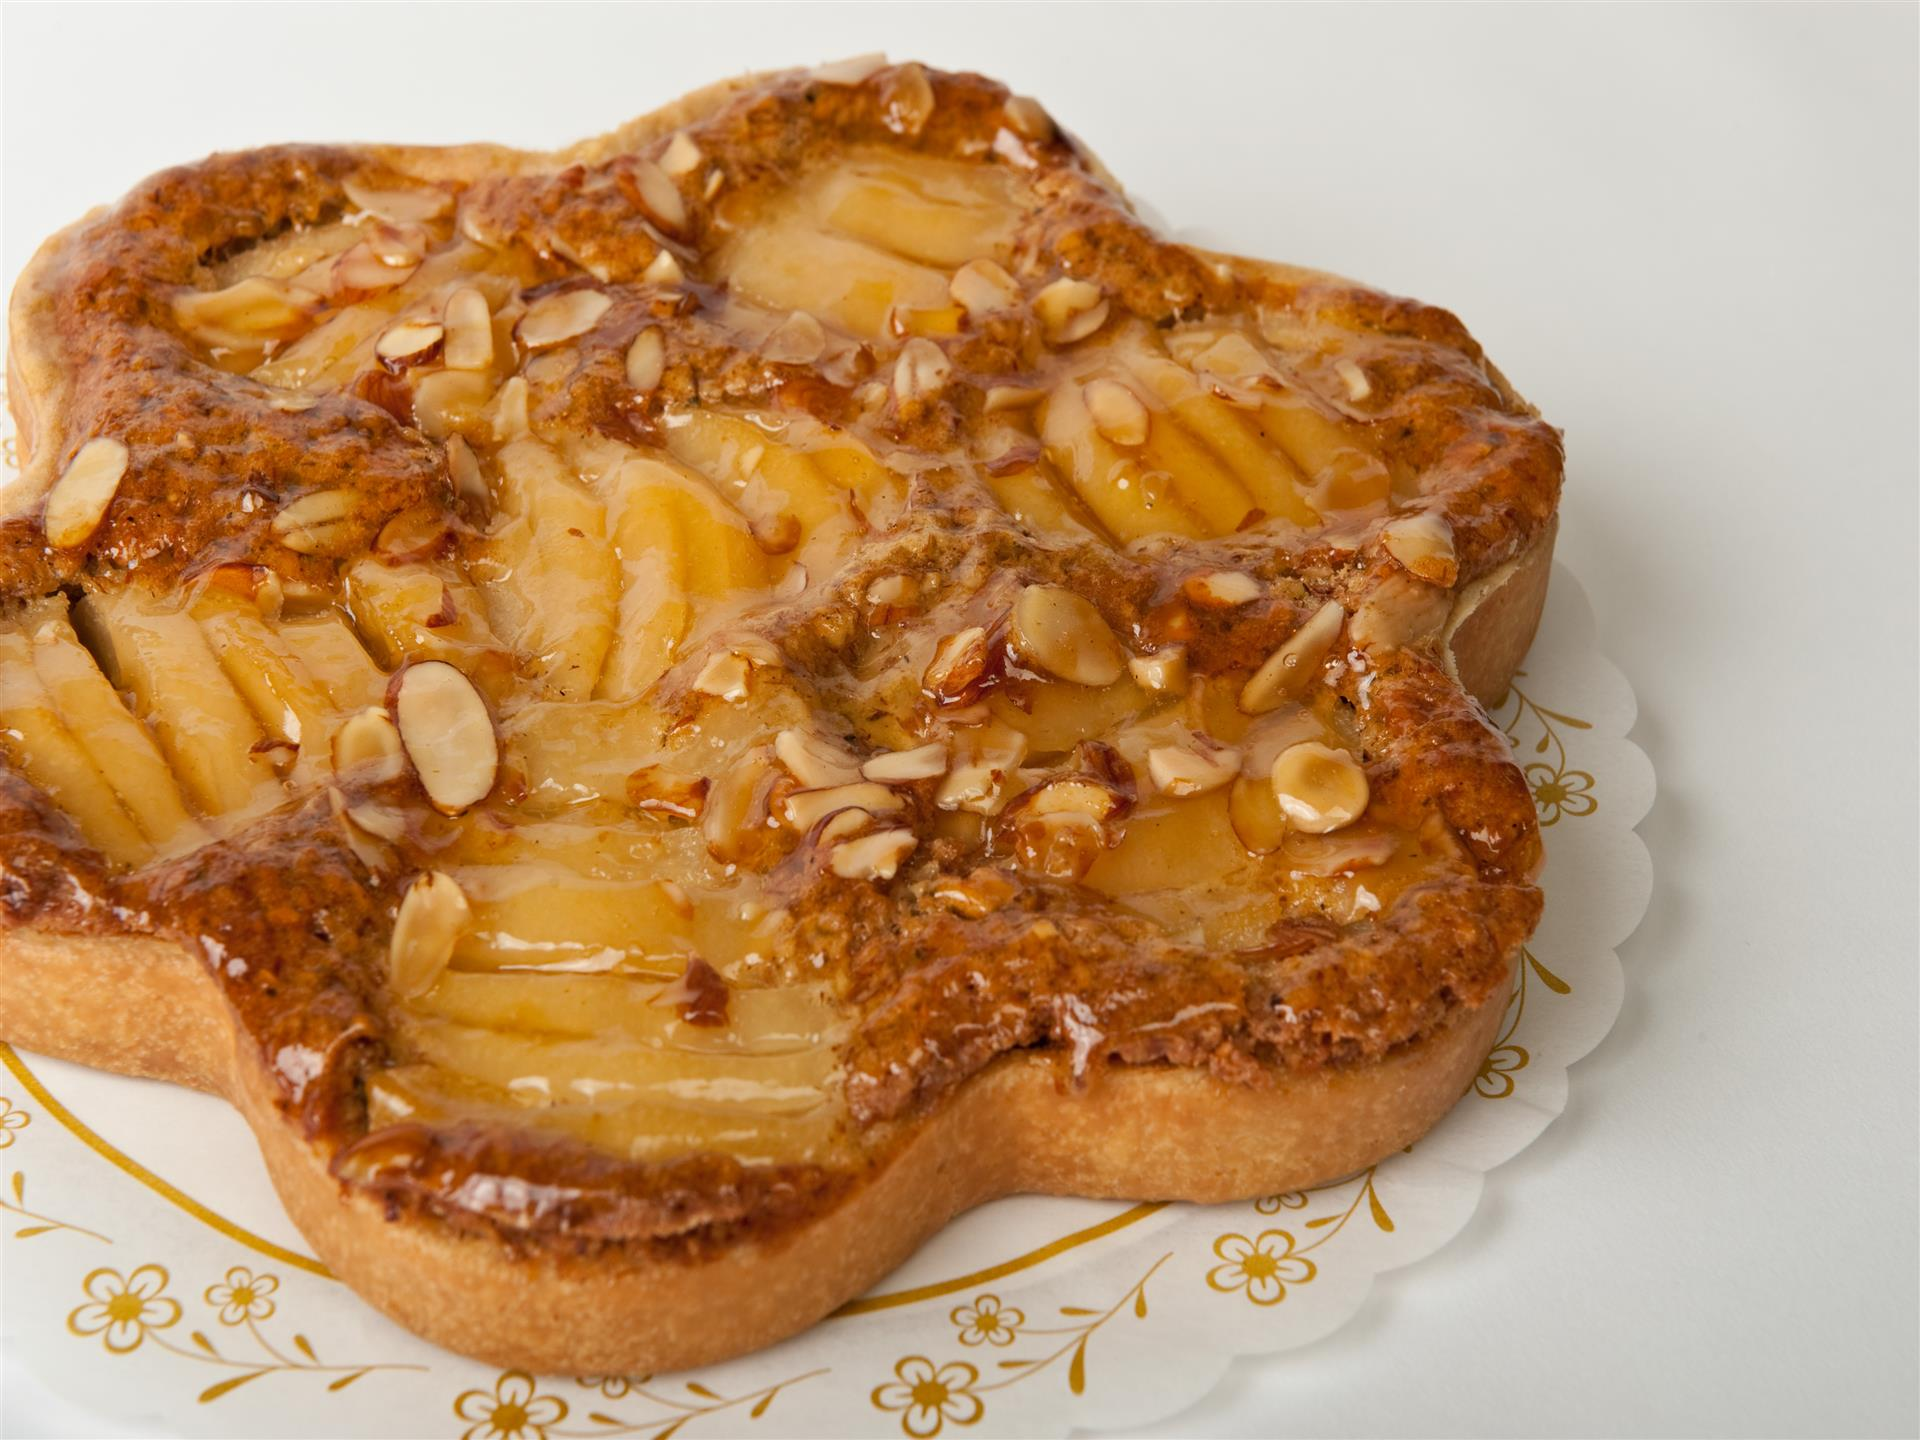 tart topped with apples